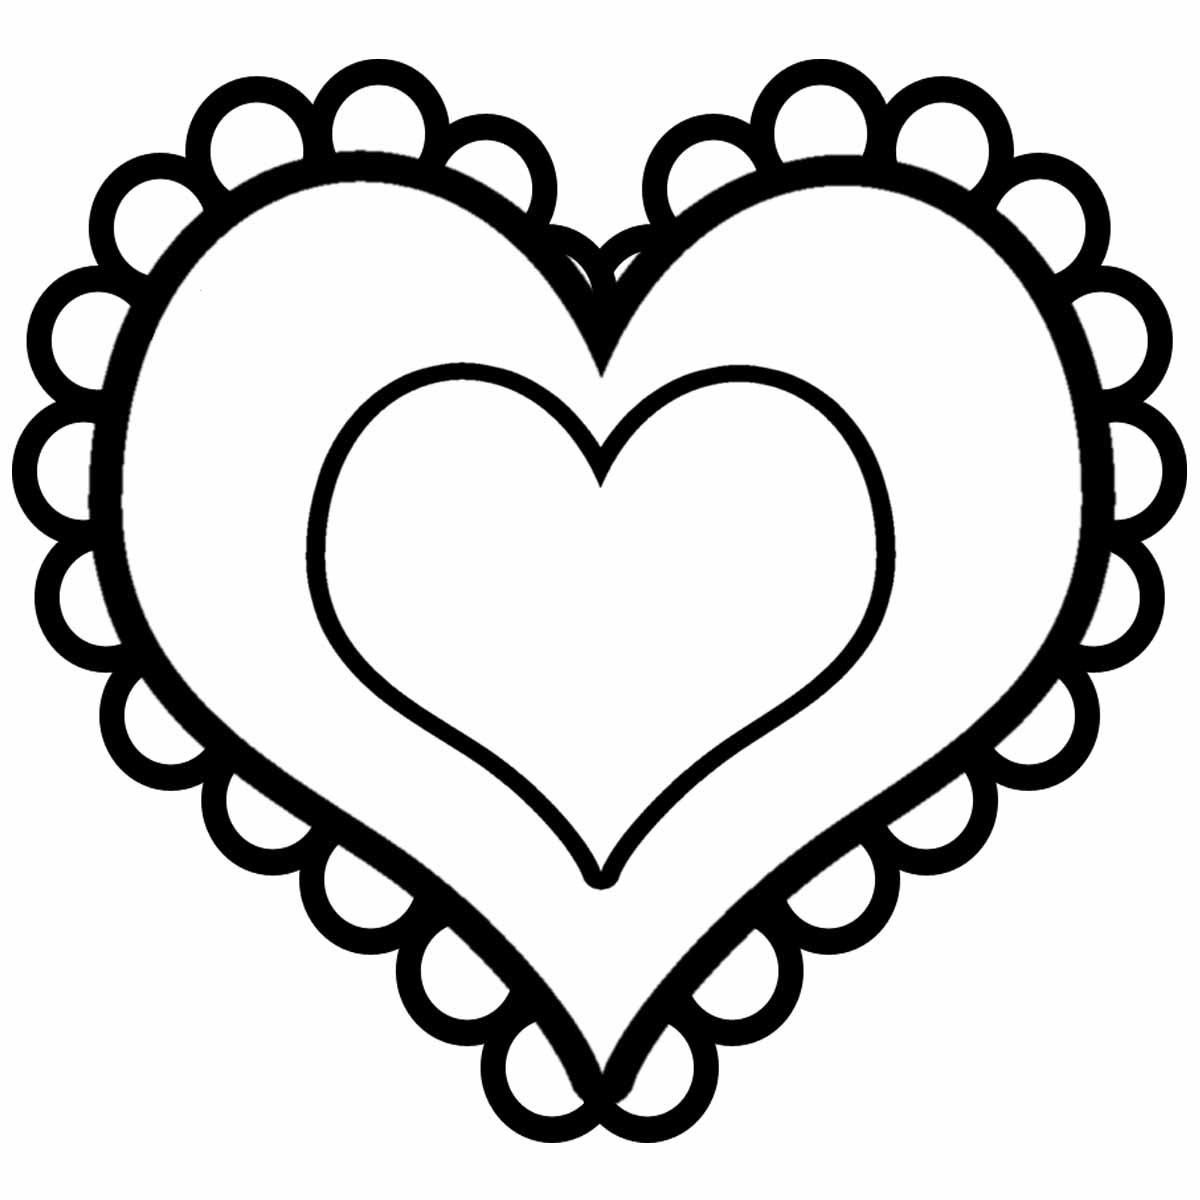 hearts coloring free printable heart coloring pages for kids hearts coloring